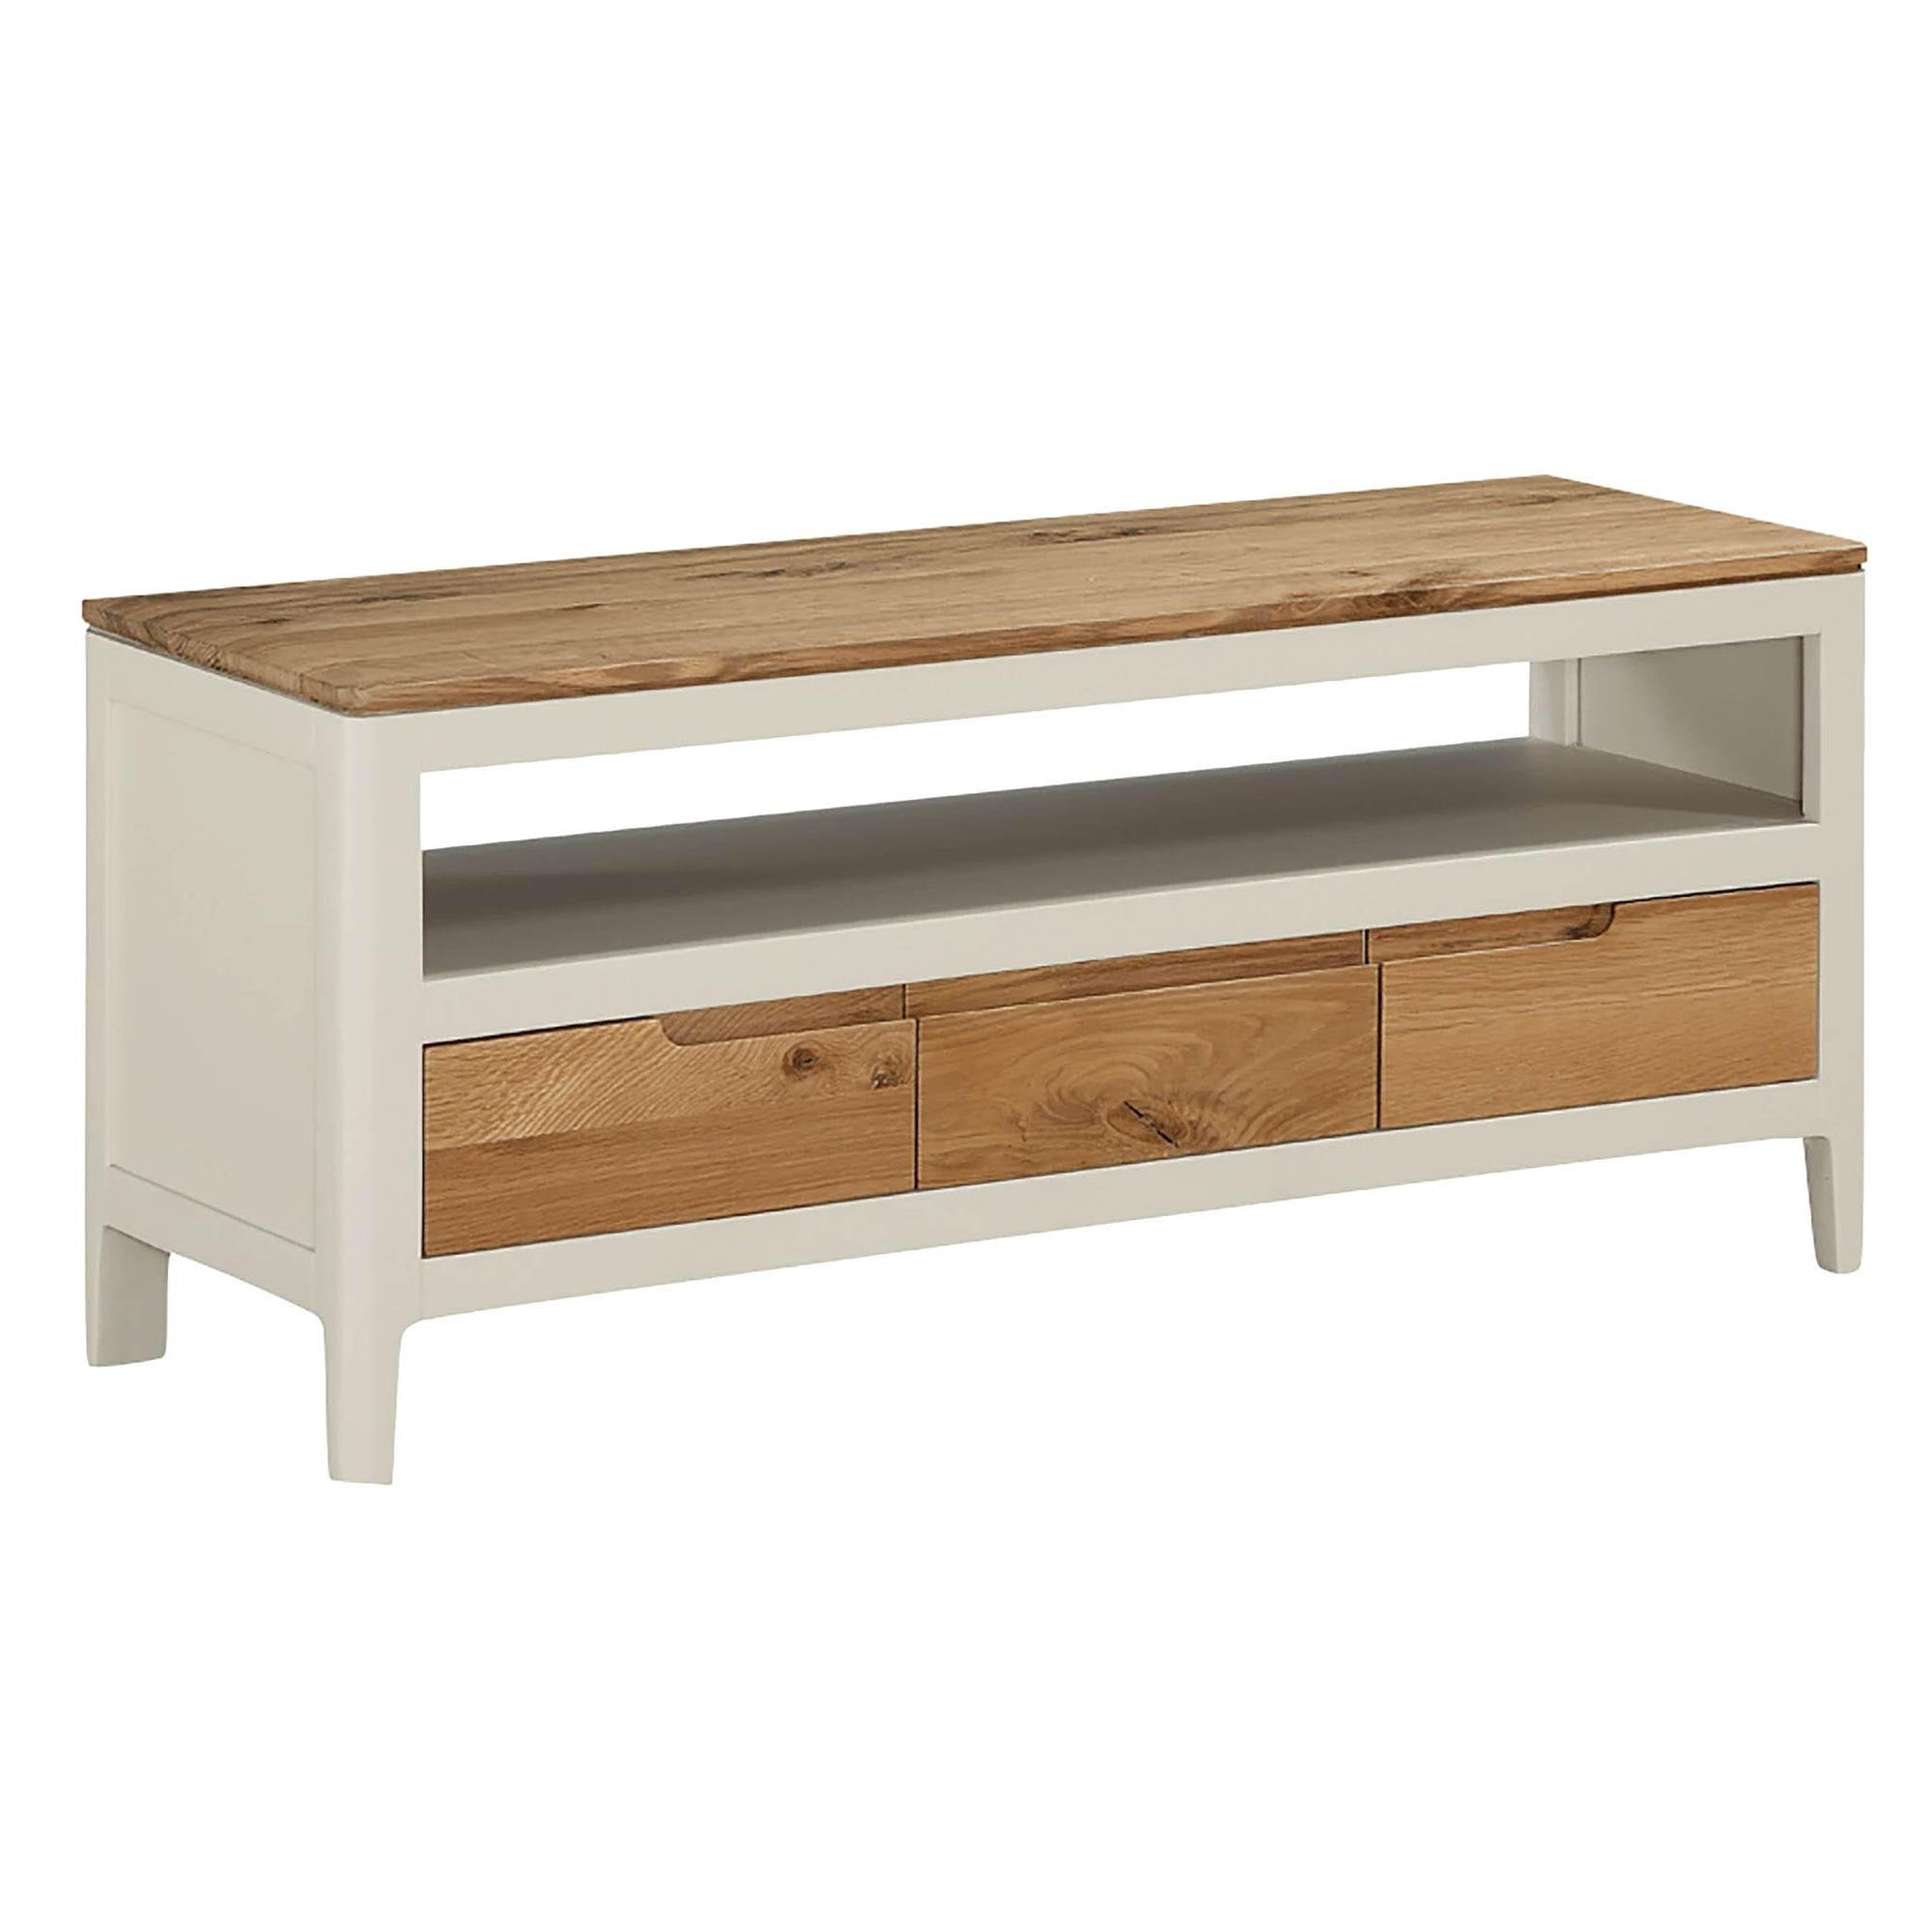 Dunmore Painted 105cm TV Stand Unit by Roseland Furniture